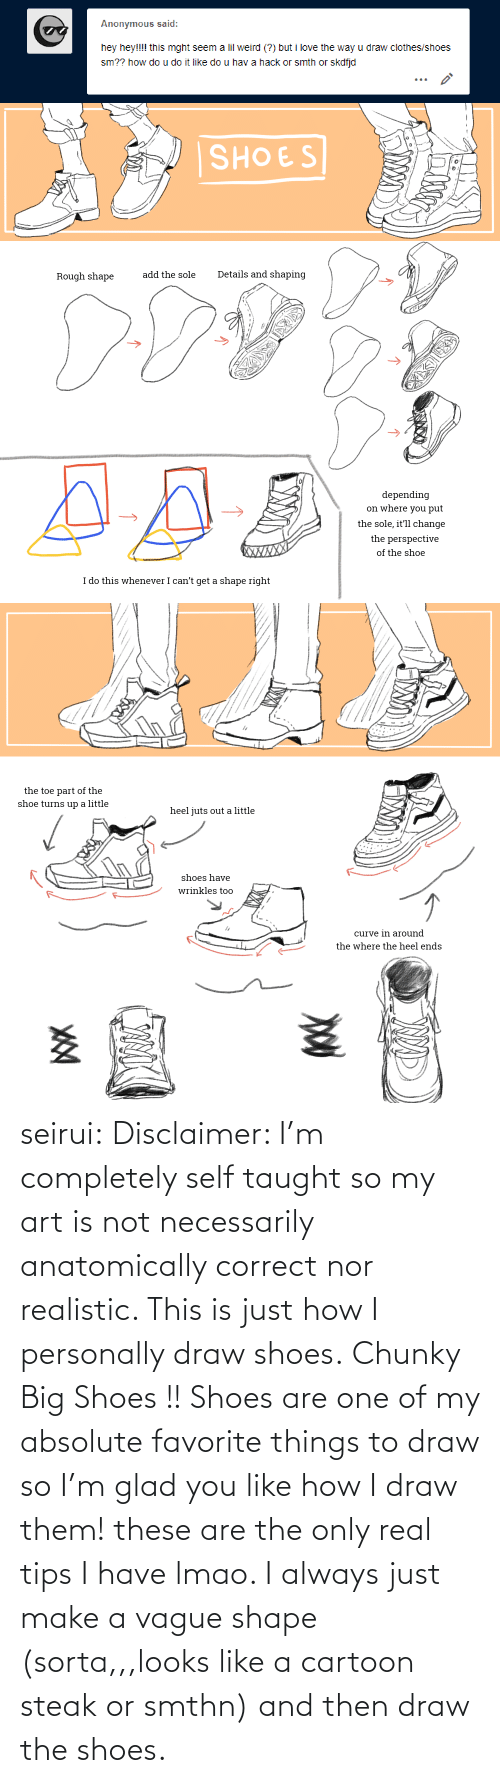 Clothes, Curving, and Lmao: Anonymous said:  hey hey!!!! this mght seem a lil weird (?) but i love the way u draw clothes/shoes  sm?? how do u do it like do u hav a hack or smth or skdfjd   SHOES  Details and shaping  add the sole  Rough shape  depending  on where you put  the sole, it'll change  the perspective  XWXXX  of the shoe  I do this whenever I can't get a shape right   the toe part of the  shoe turns up a little  heel juts out a little  shoes have  wrinkles too  curve in around  the where the heel ends seirui: Disclaimer: I'm completely self taught so my art is not necessarily anatomically correct nor realistic. This is just how I personally draw shoes. Chunky Big Shoes !! Shoes are one of my absolute favorite things to draw so I'm glad you like how I draw them! these are the only real tips I have lmao. I always just make a vague shape (sorta,,,looks like a cartoon steak or smthn) and then draw the shoes.